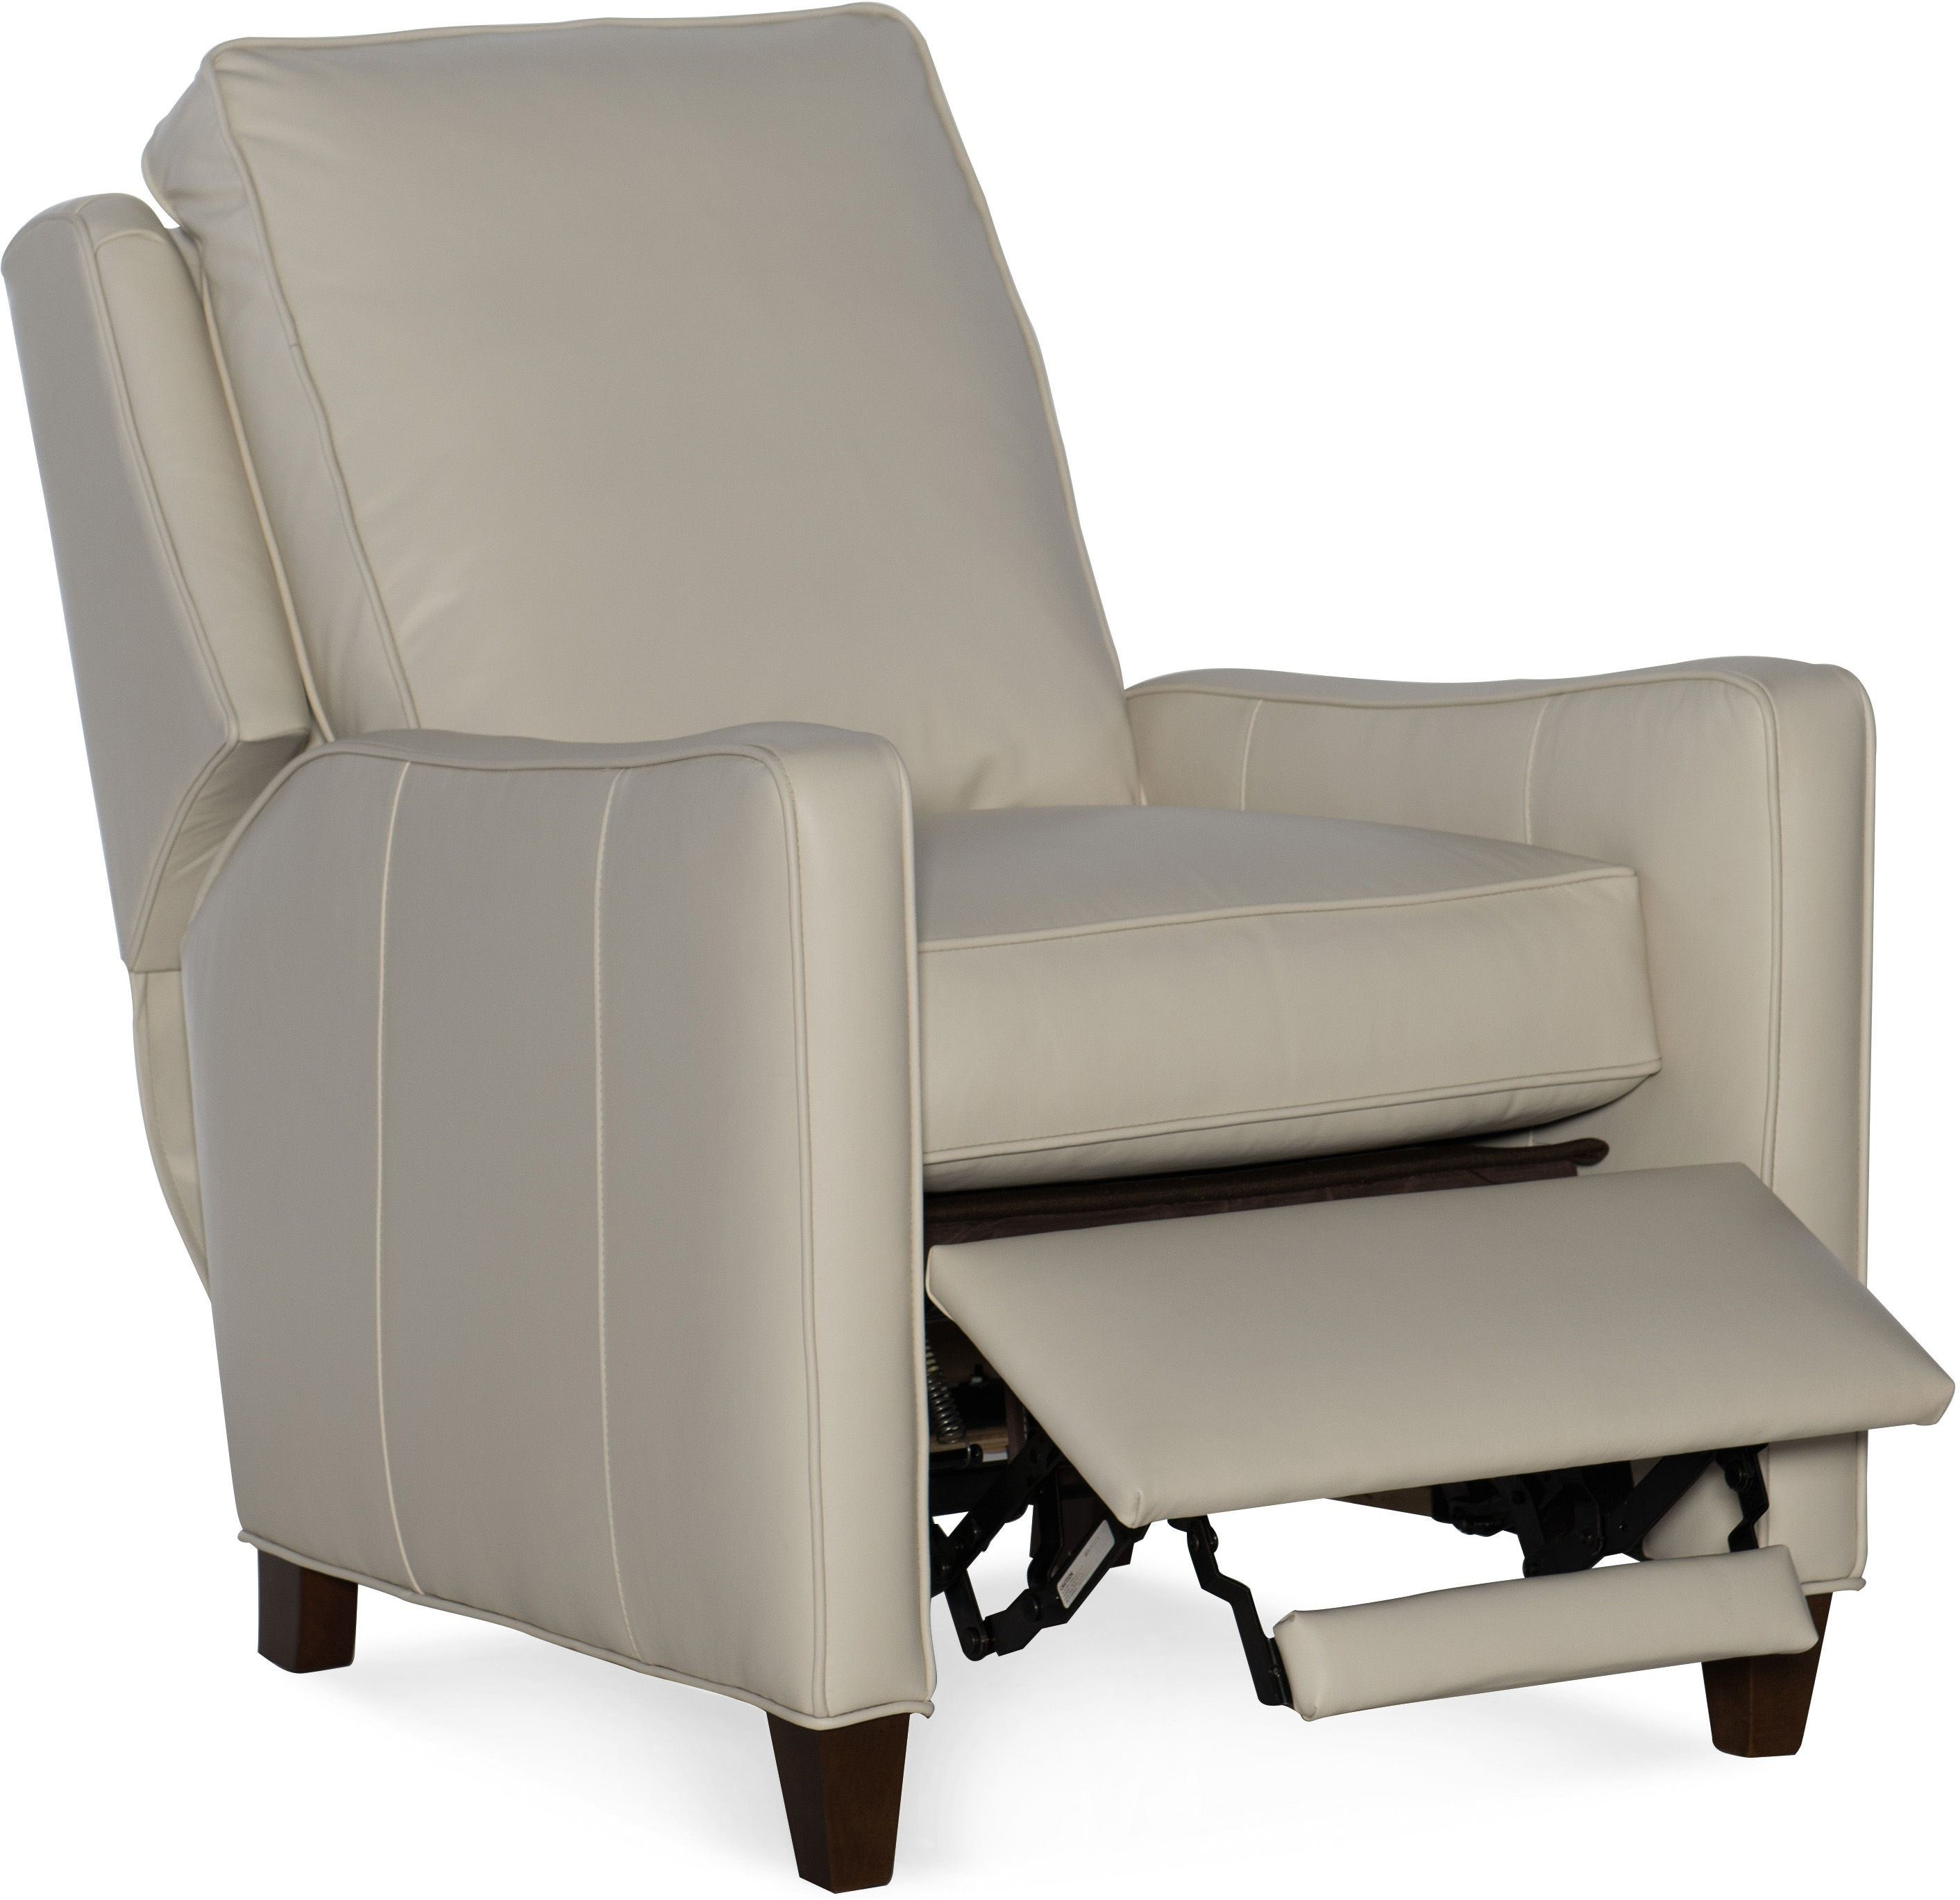 Ani 3 Way Lounger By Bradington Young 3032 986700 81 Dreaming Creamsicle Wright Furniture Flooring